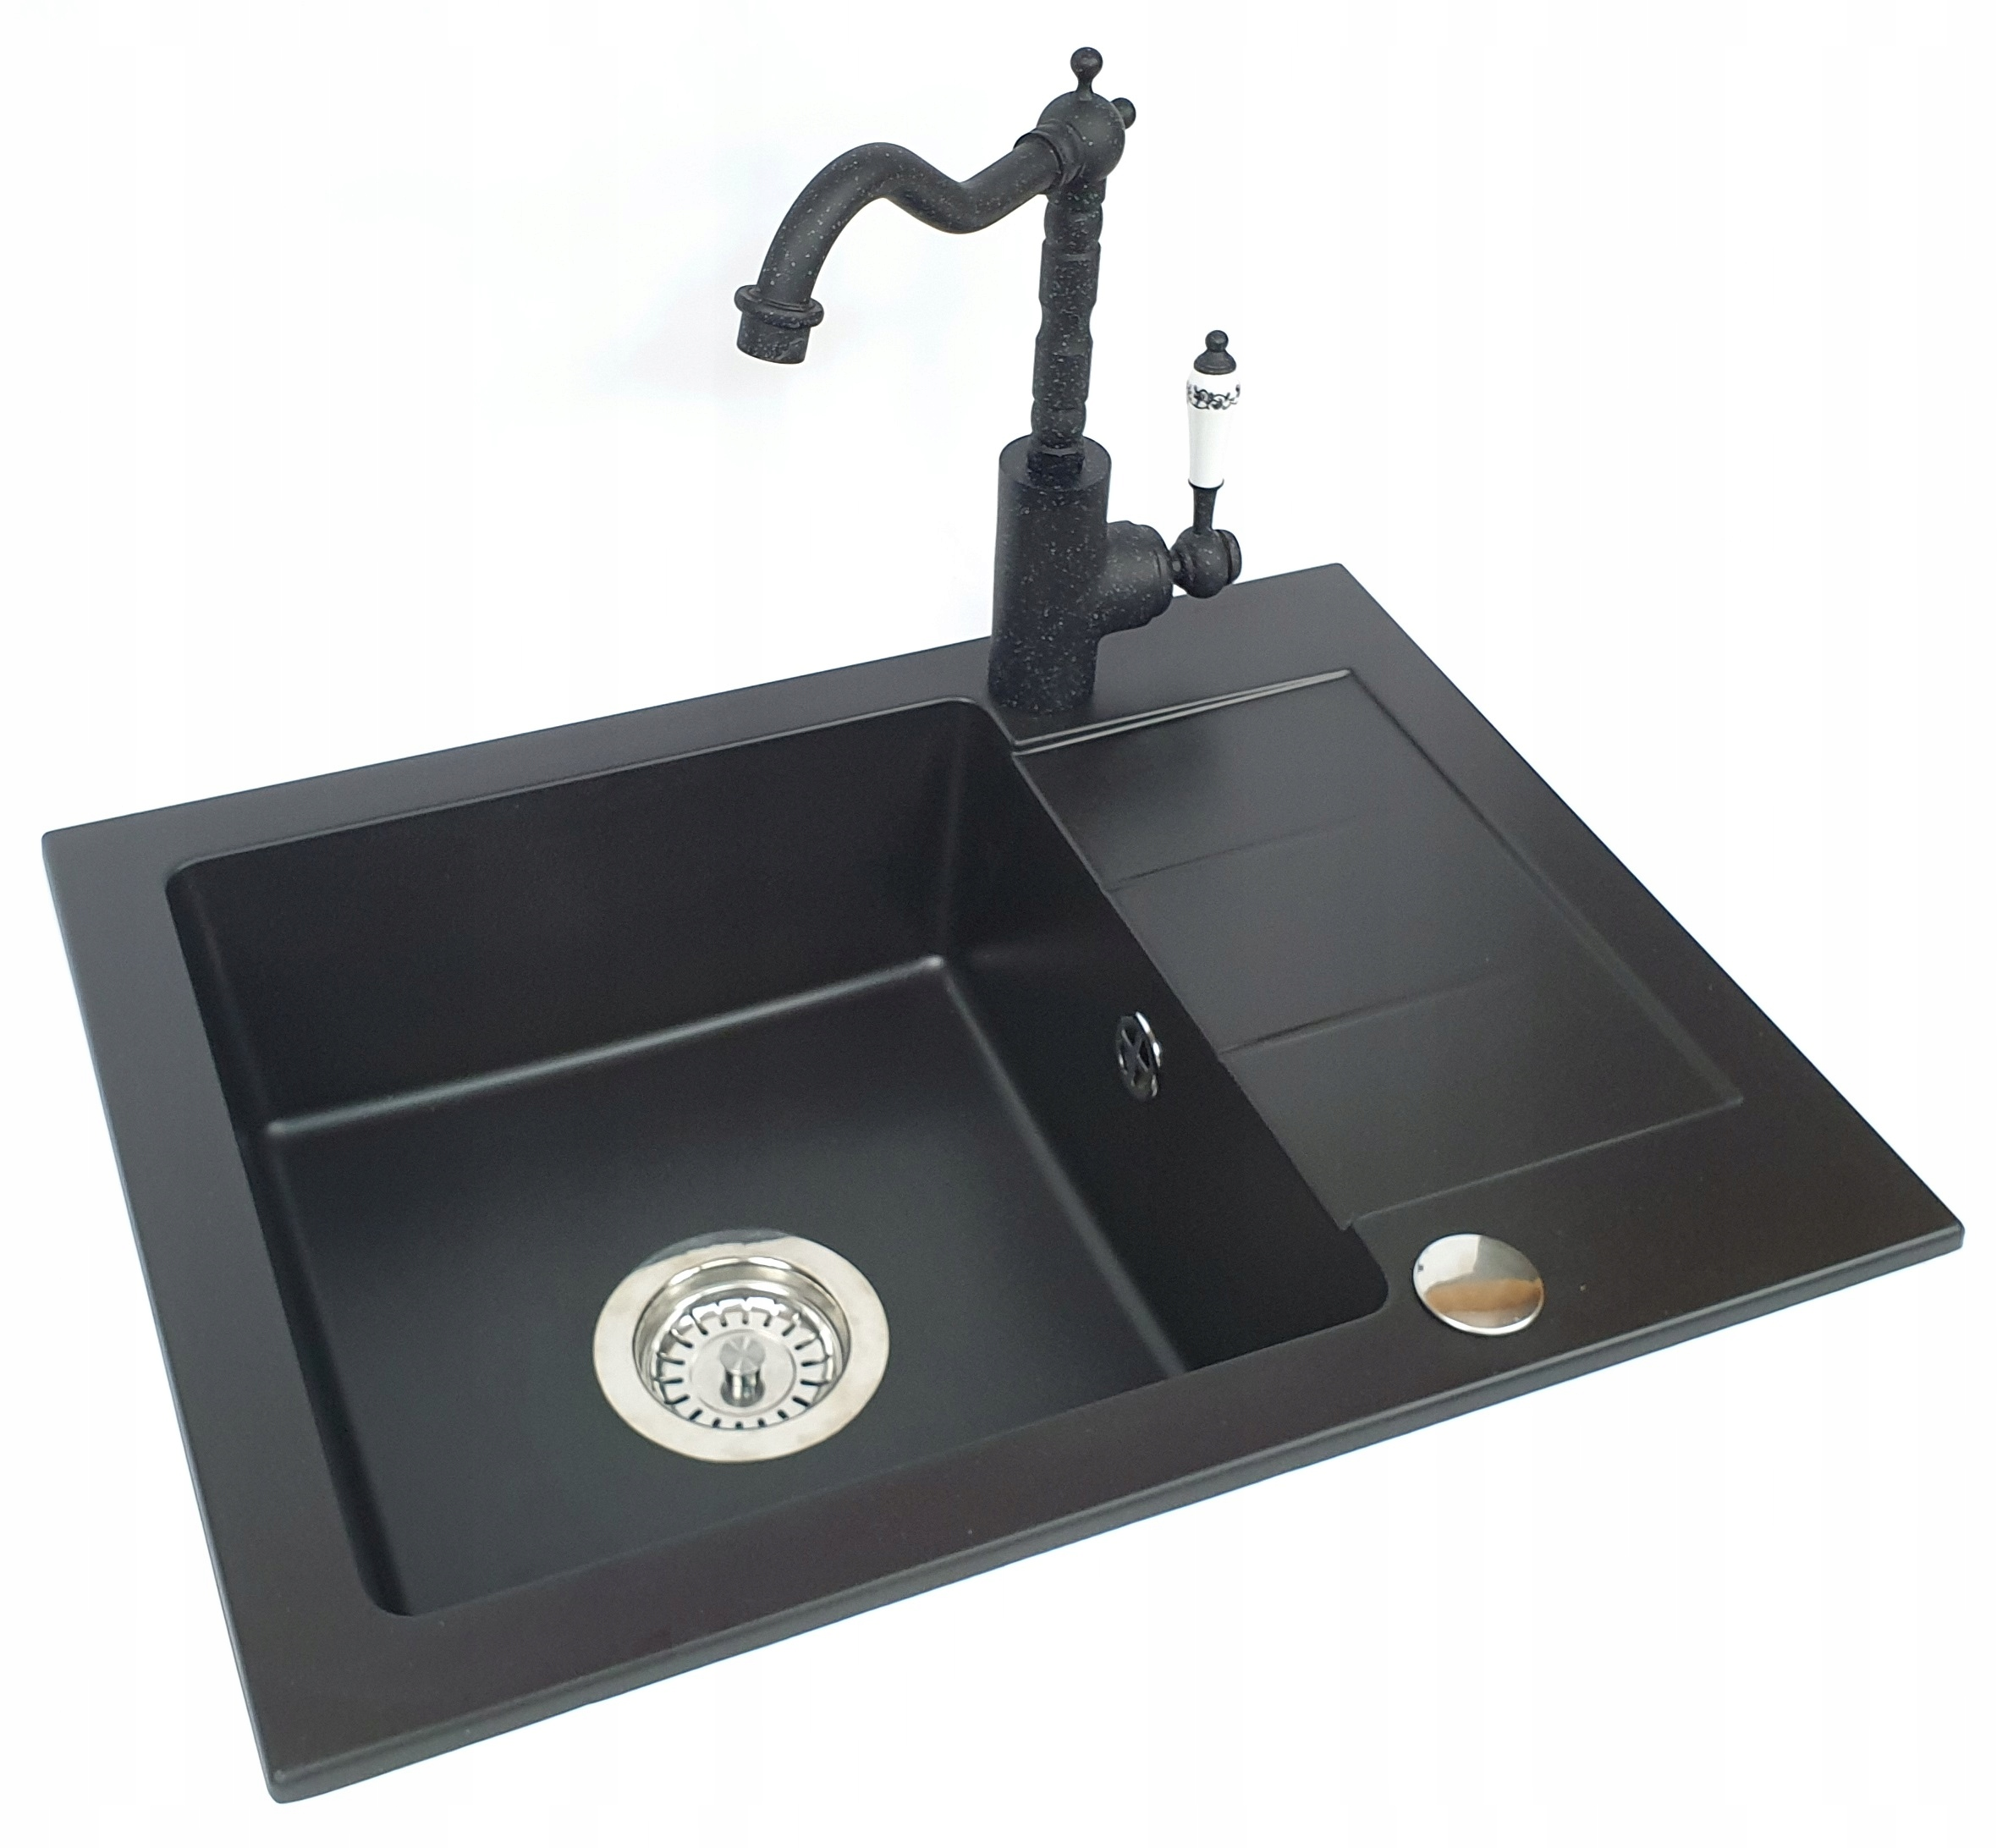 1KOMOROVÝ RETRO mixér GRANITE SINK